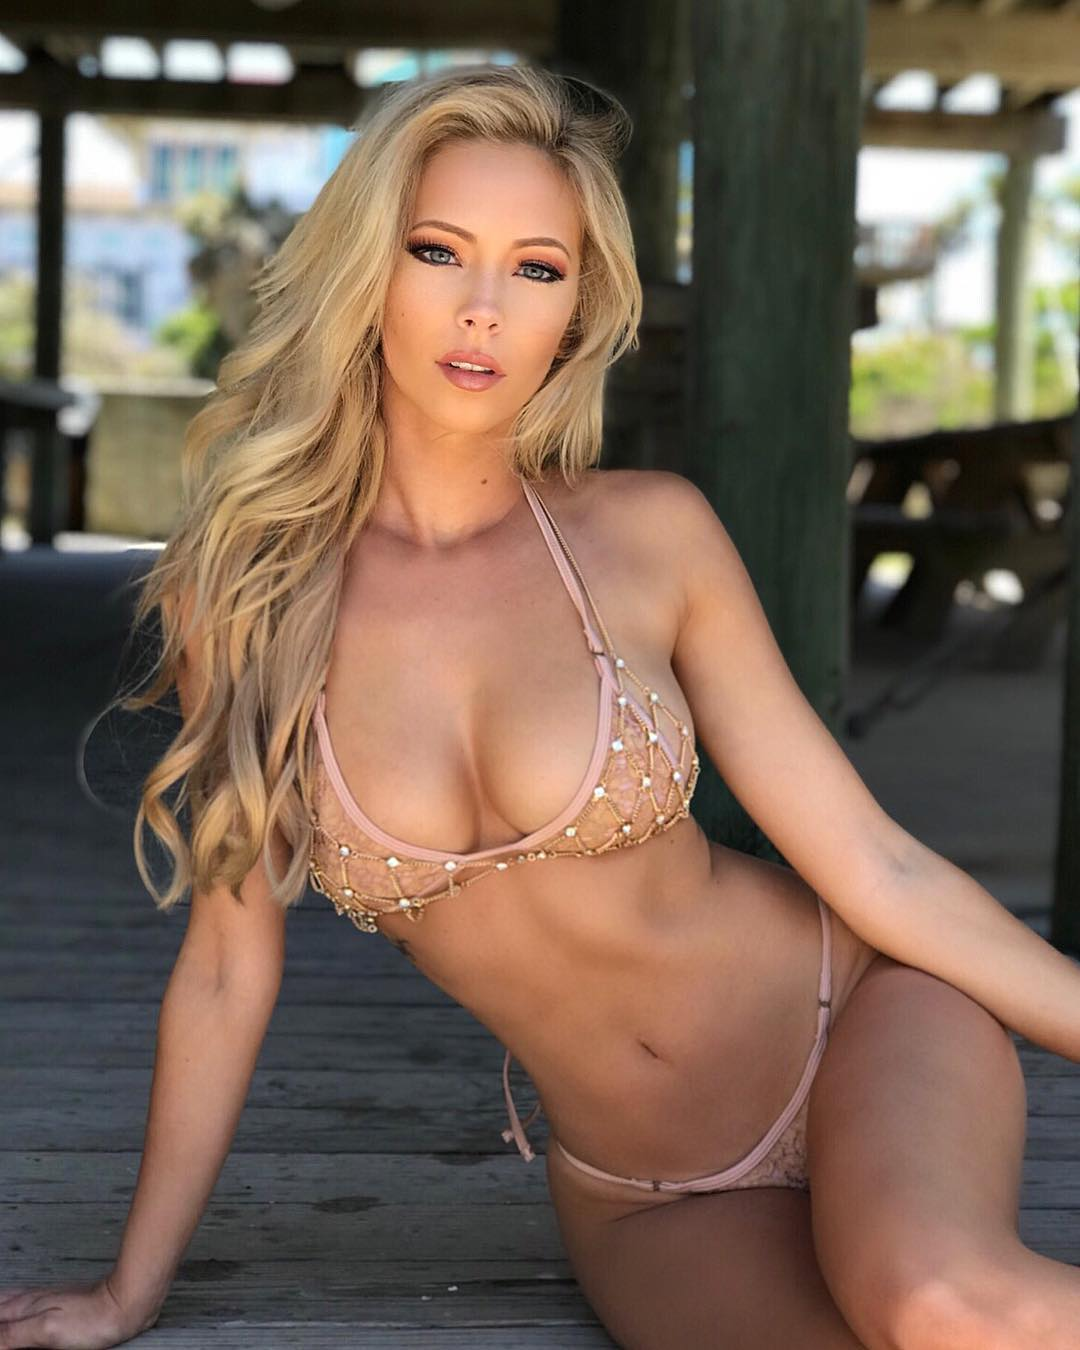 amanda taylor will leave you jaw dropped